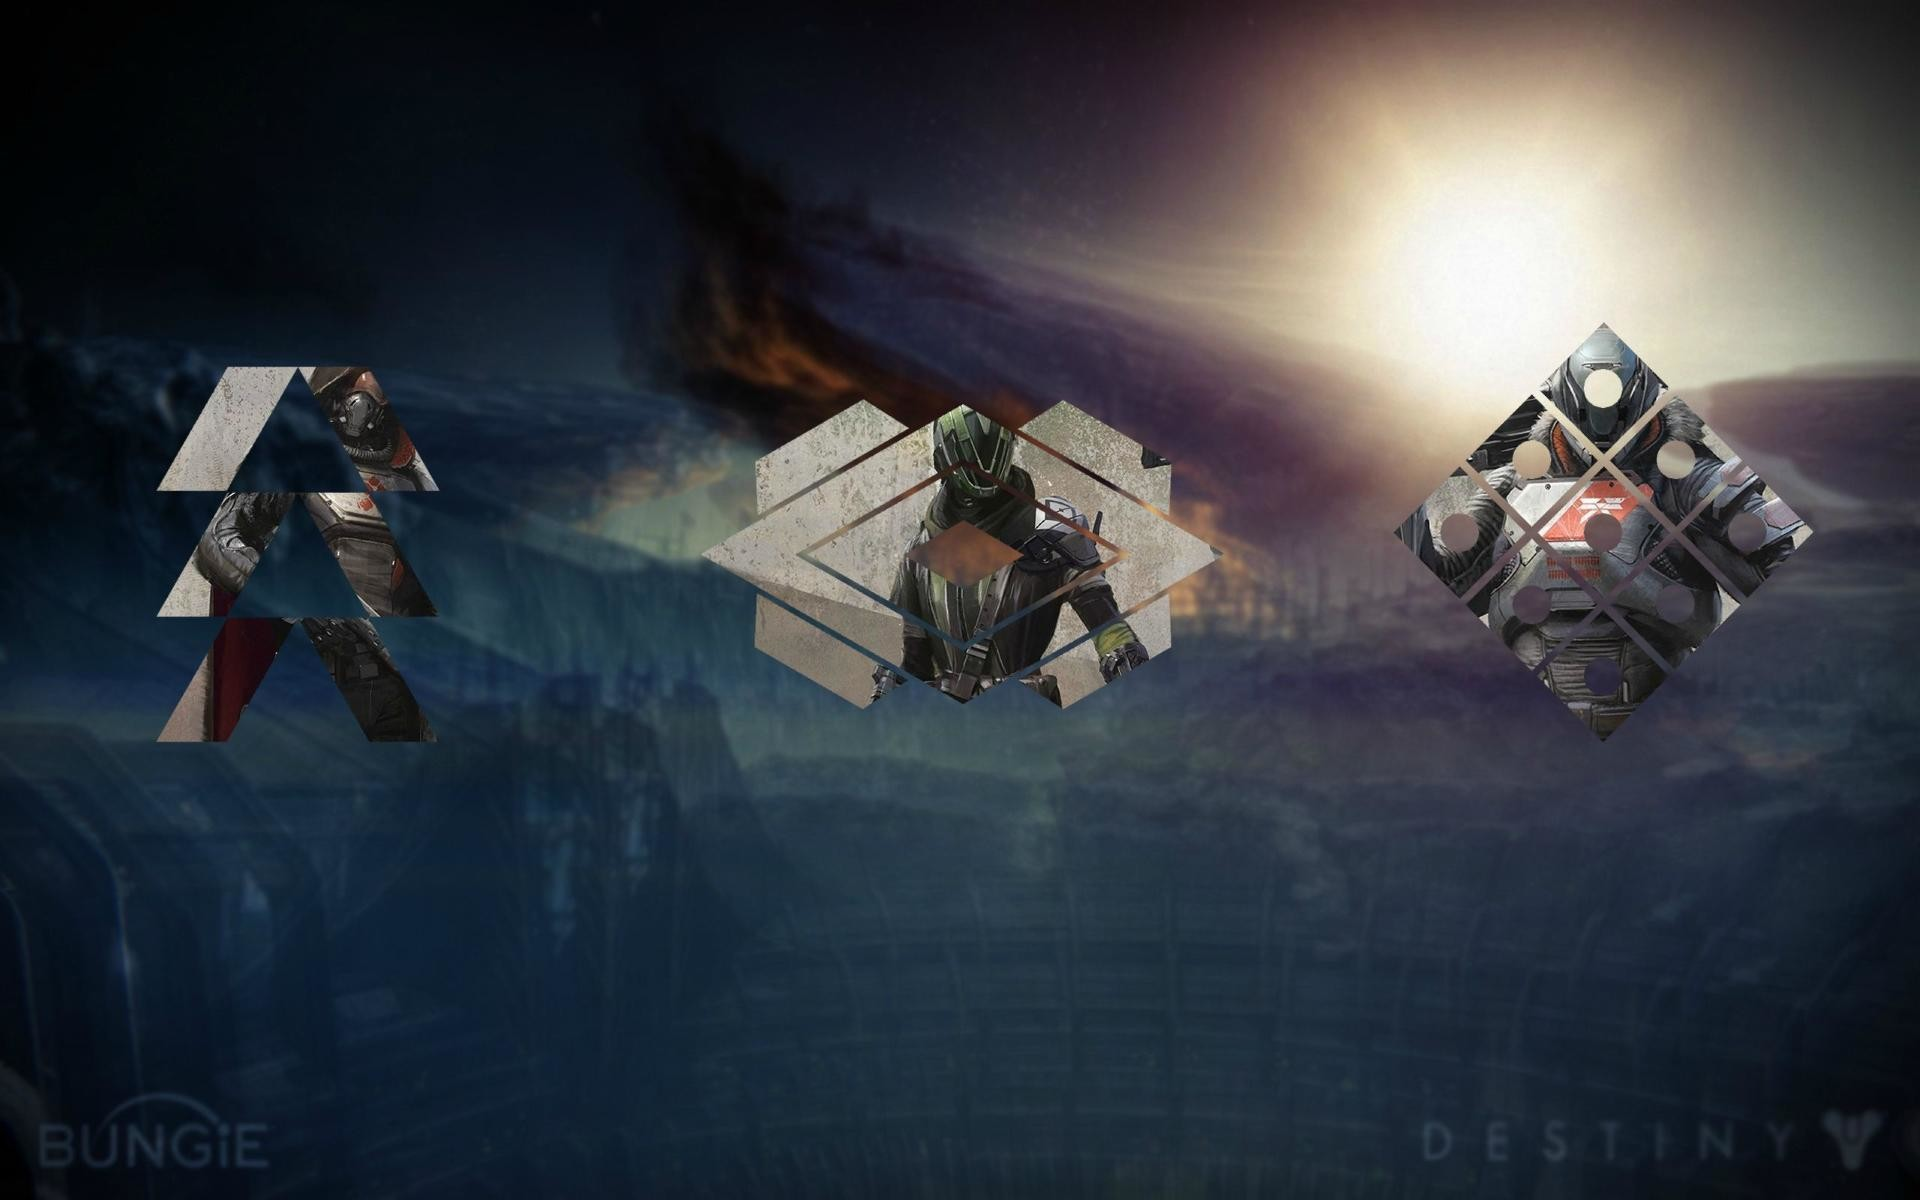 1920x1200 Destiny-phone-DestinyTheGame-wallpaper-wp2004093